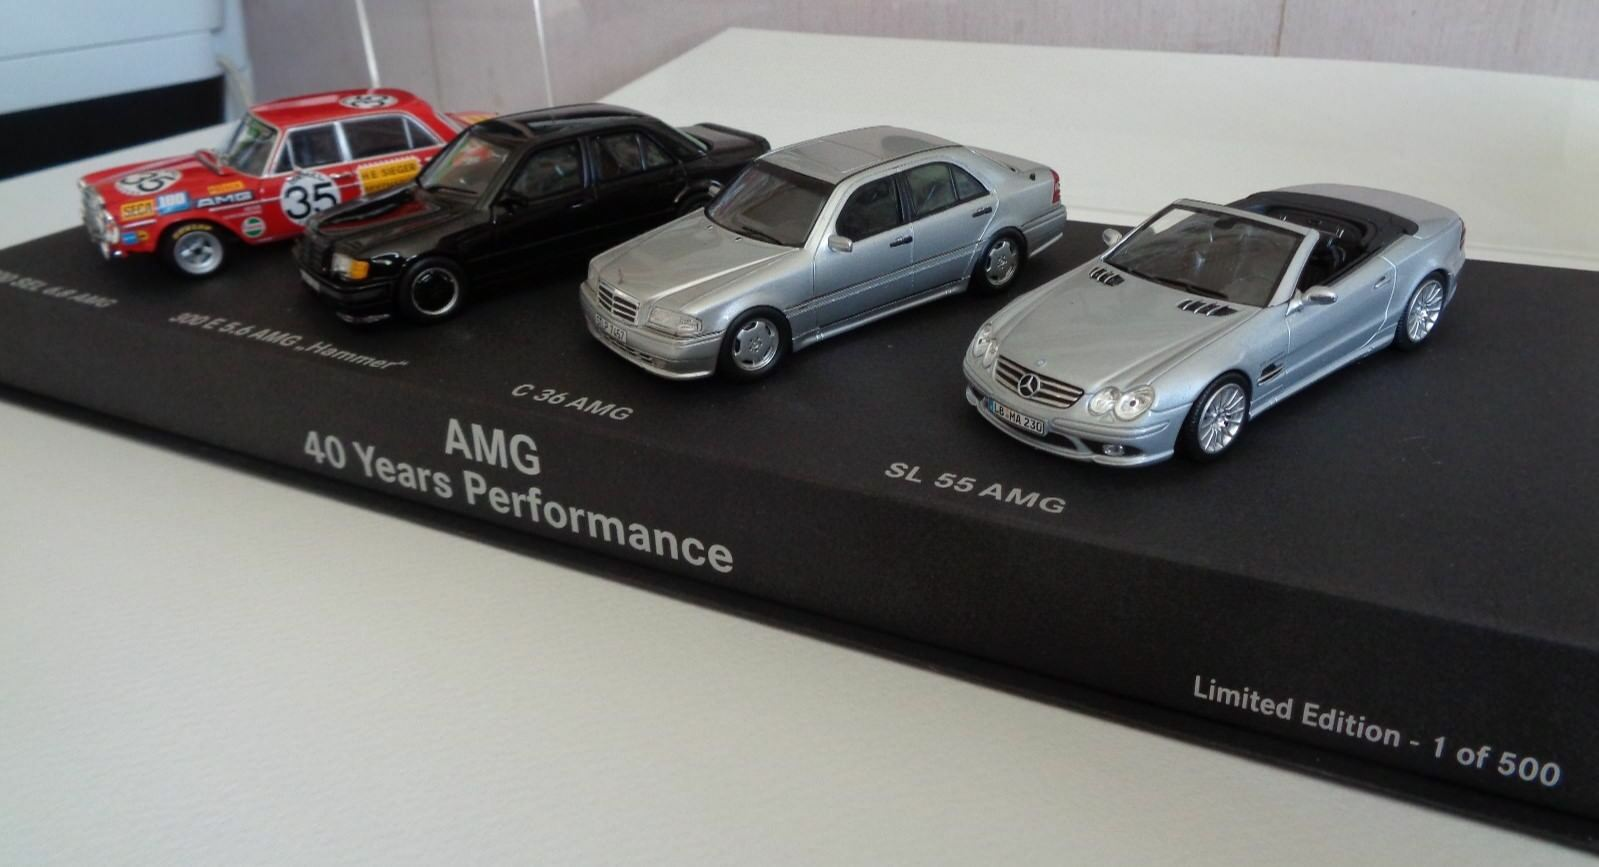 AMG Mercedes-Benz 1 43 set 40 years of performance, minichamps spark very rare